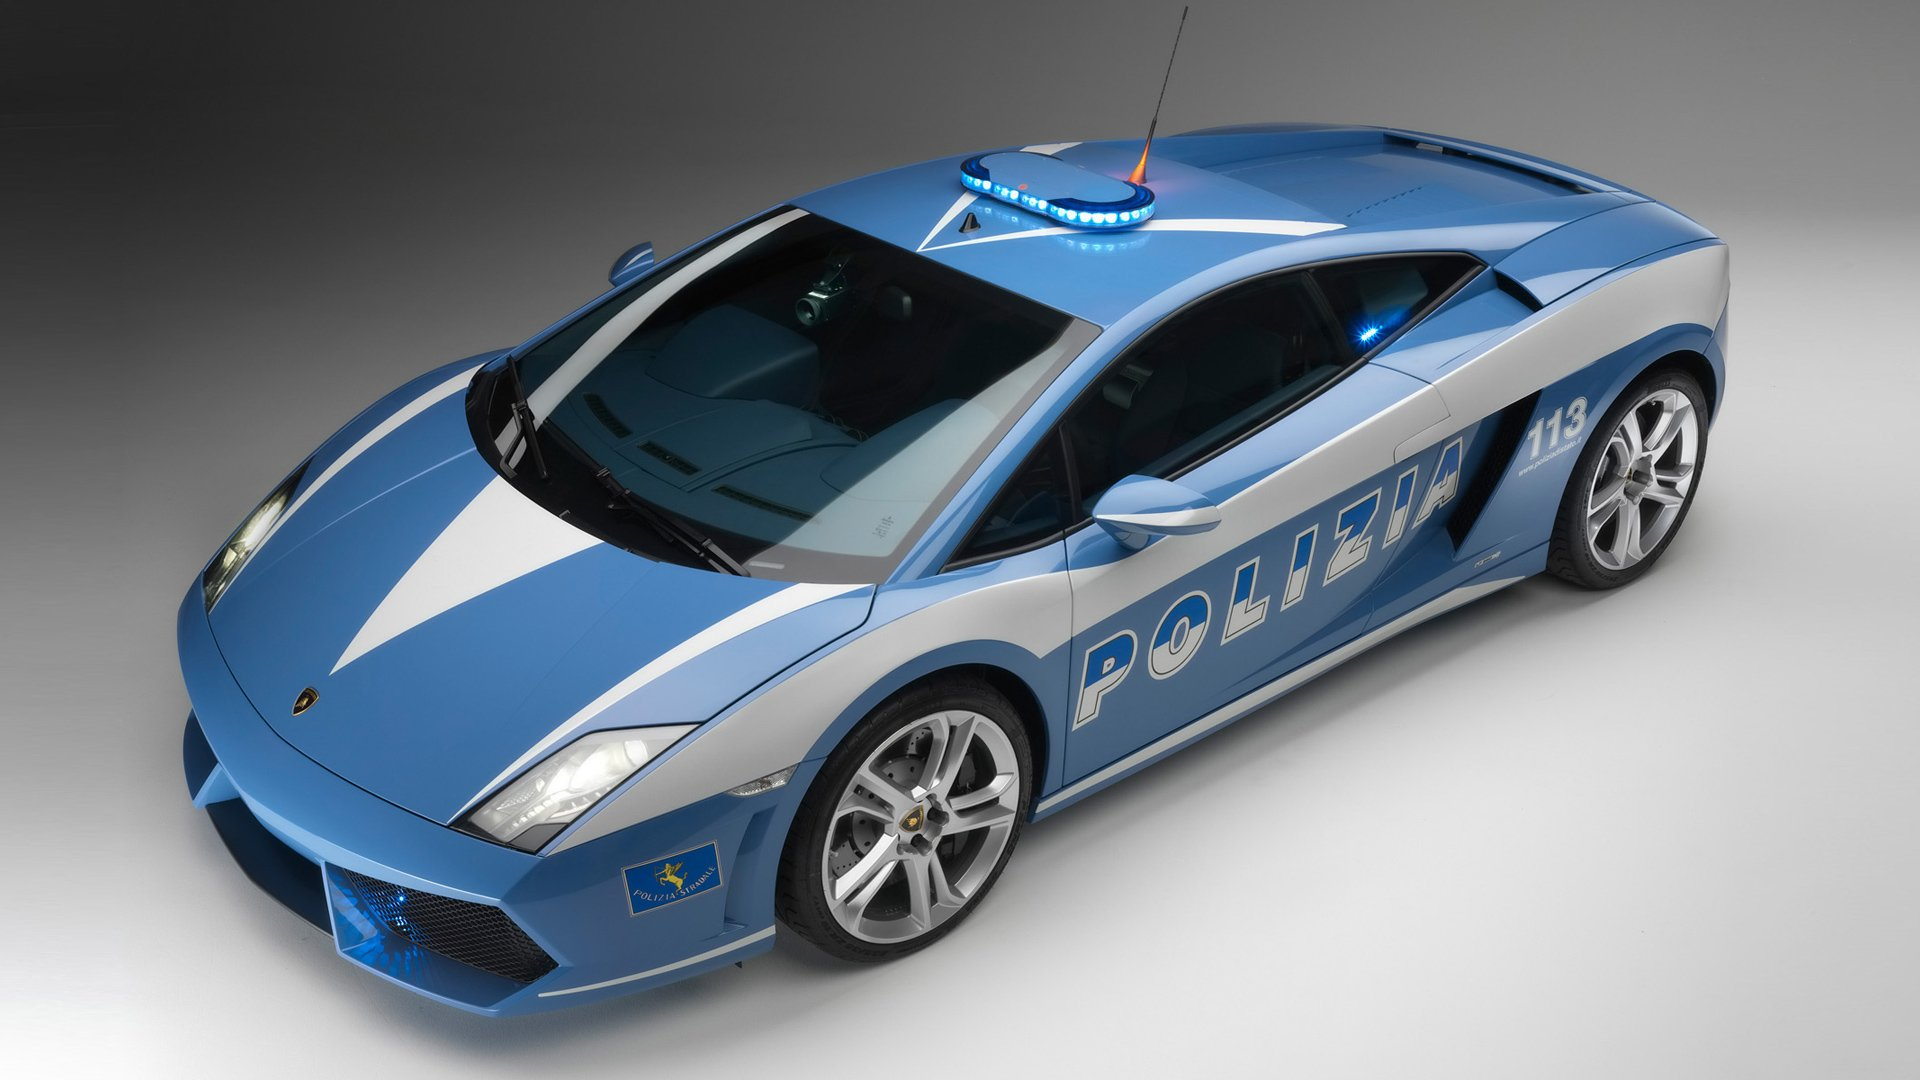 Wallpaper wallpaper Police Car Wallpaper hd wallpaper background 1920x1080